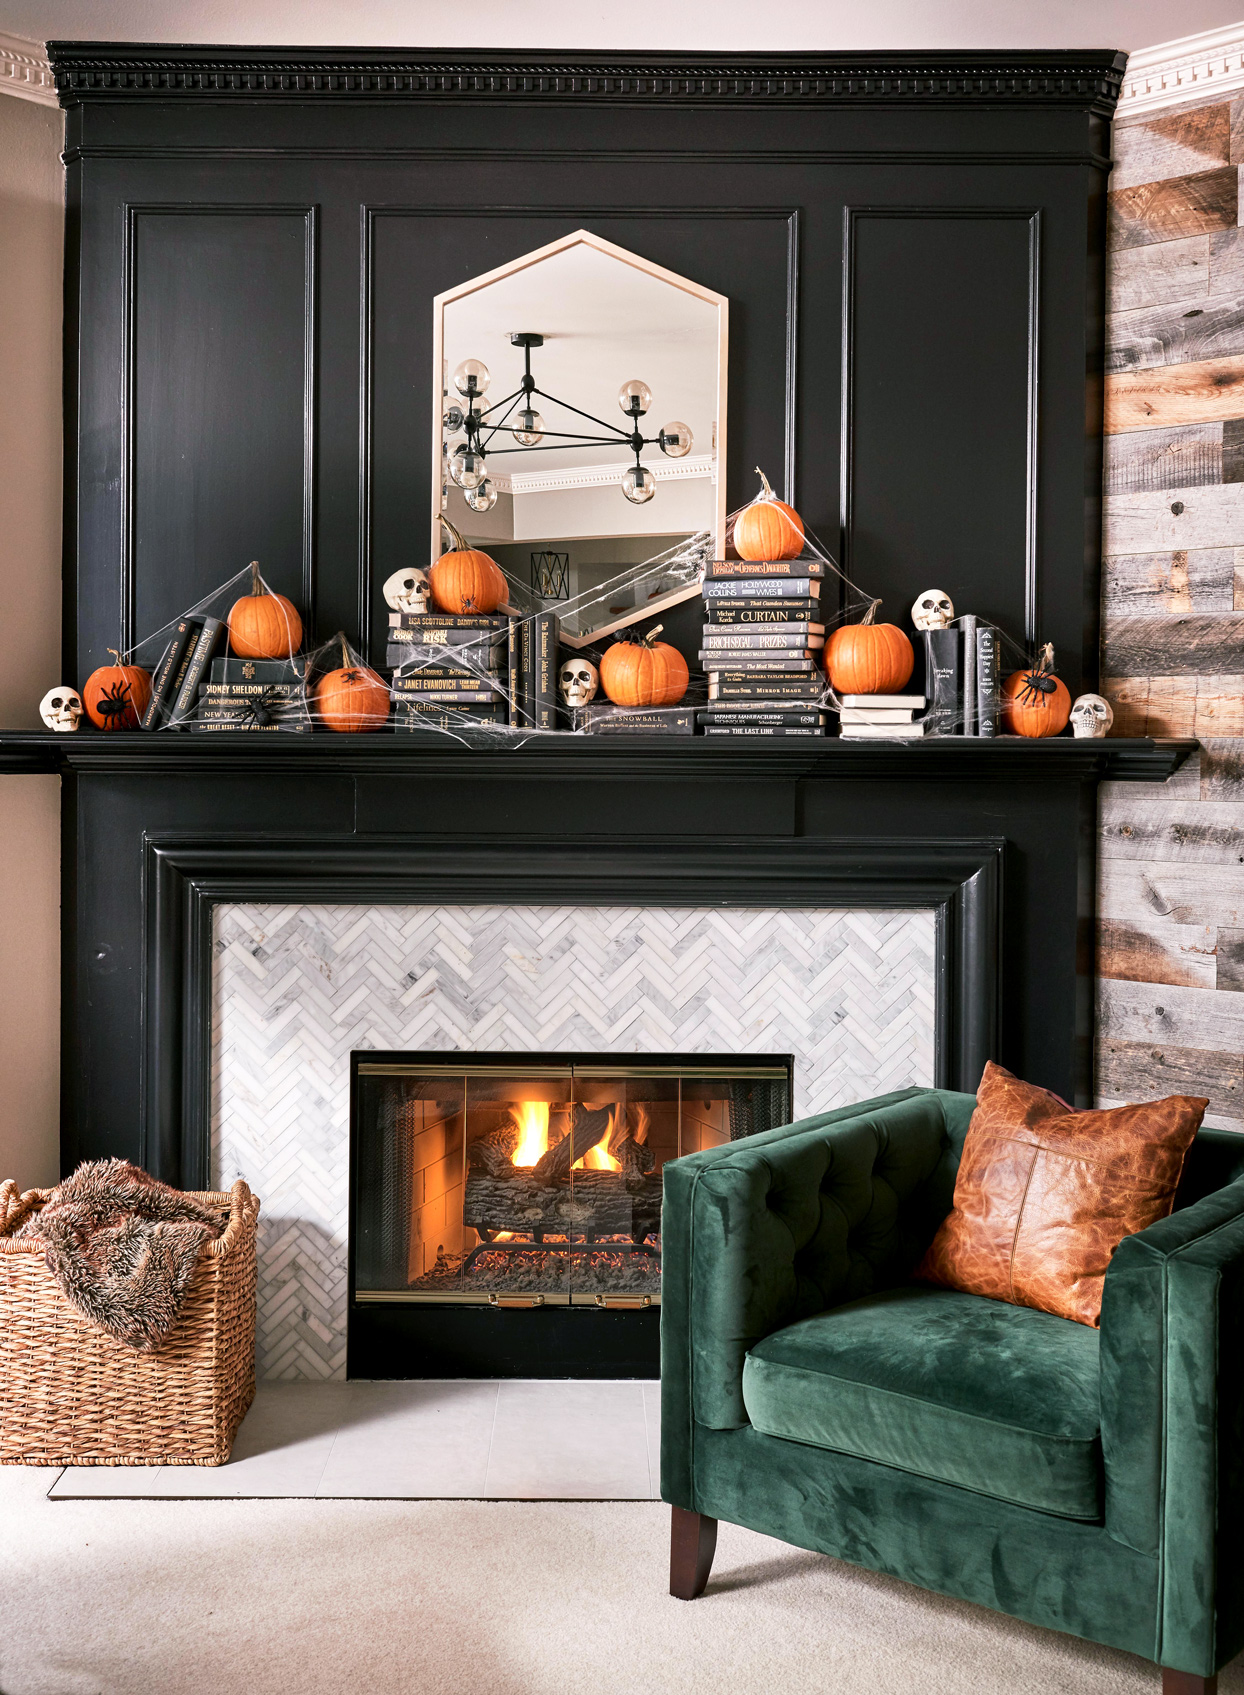 fireplace mantel with pumpkins